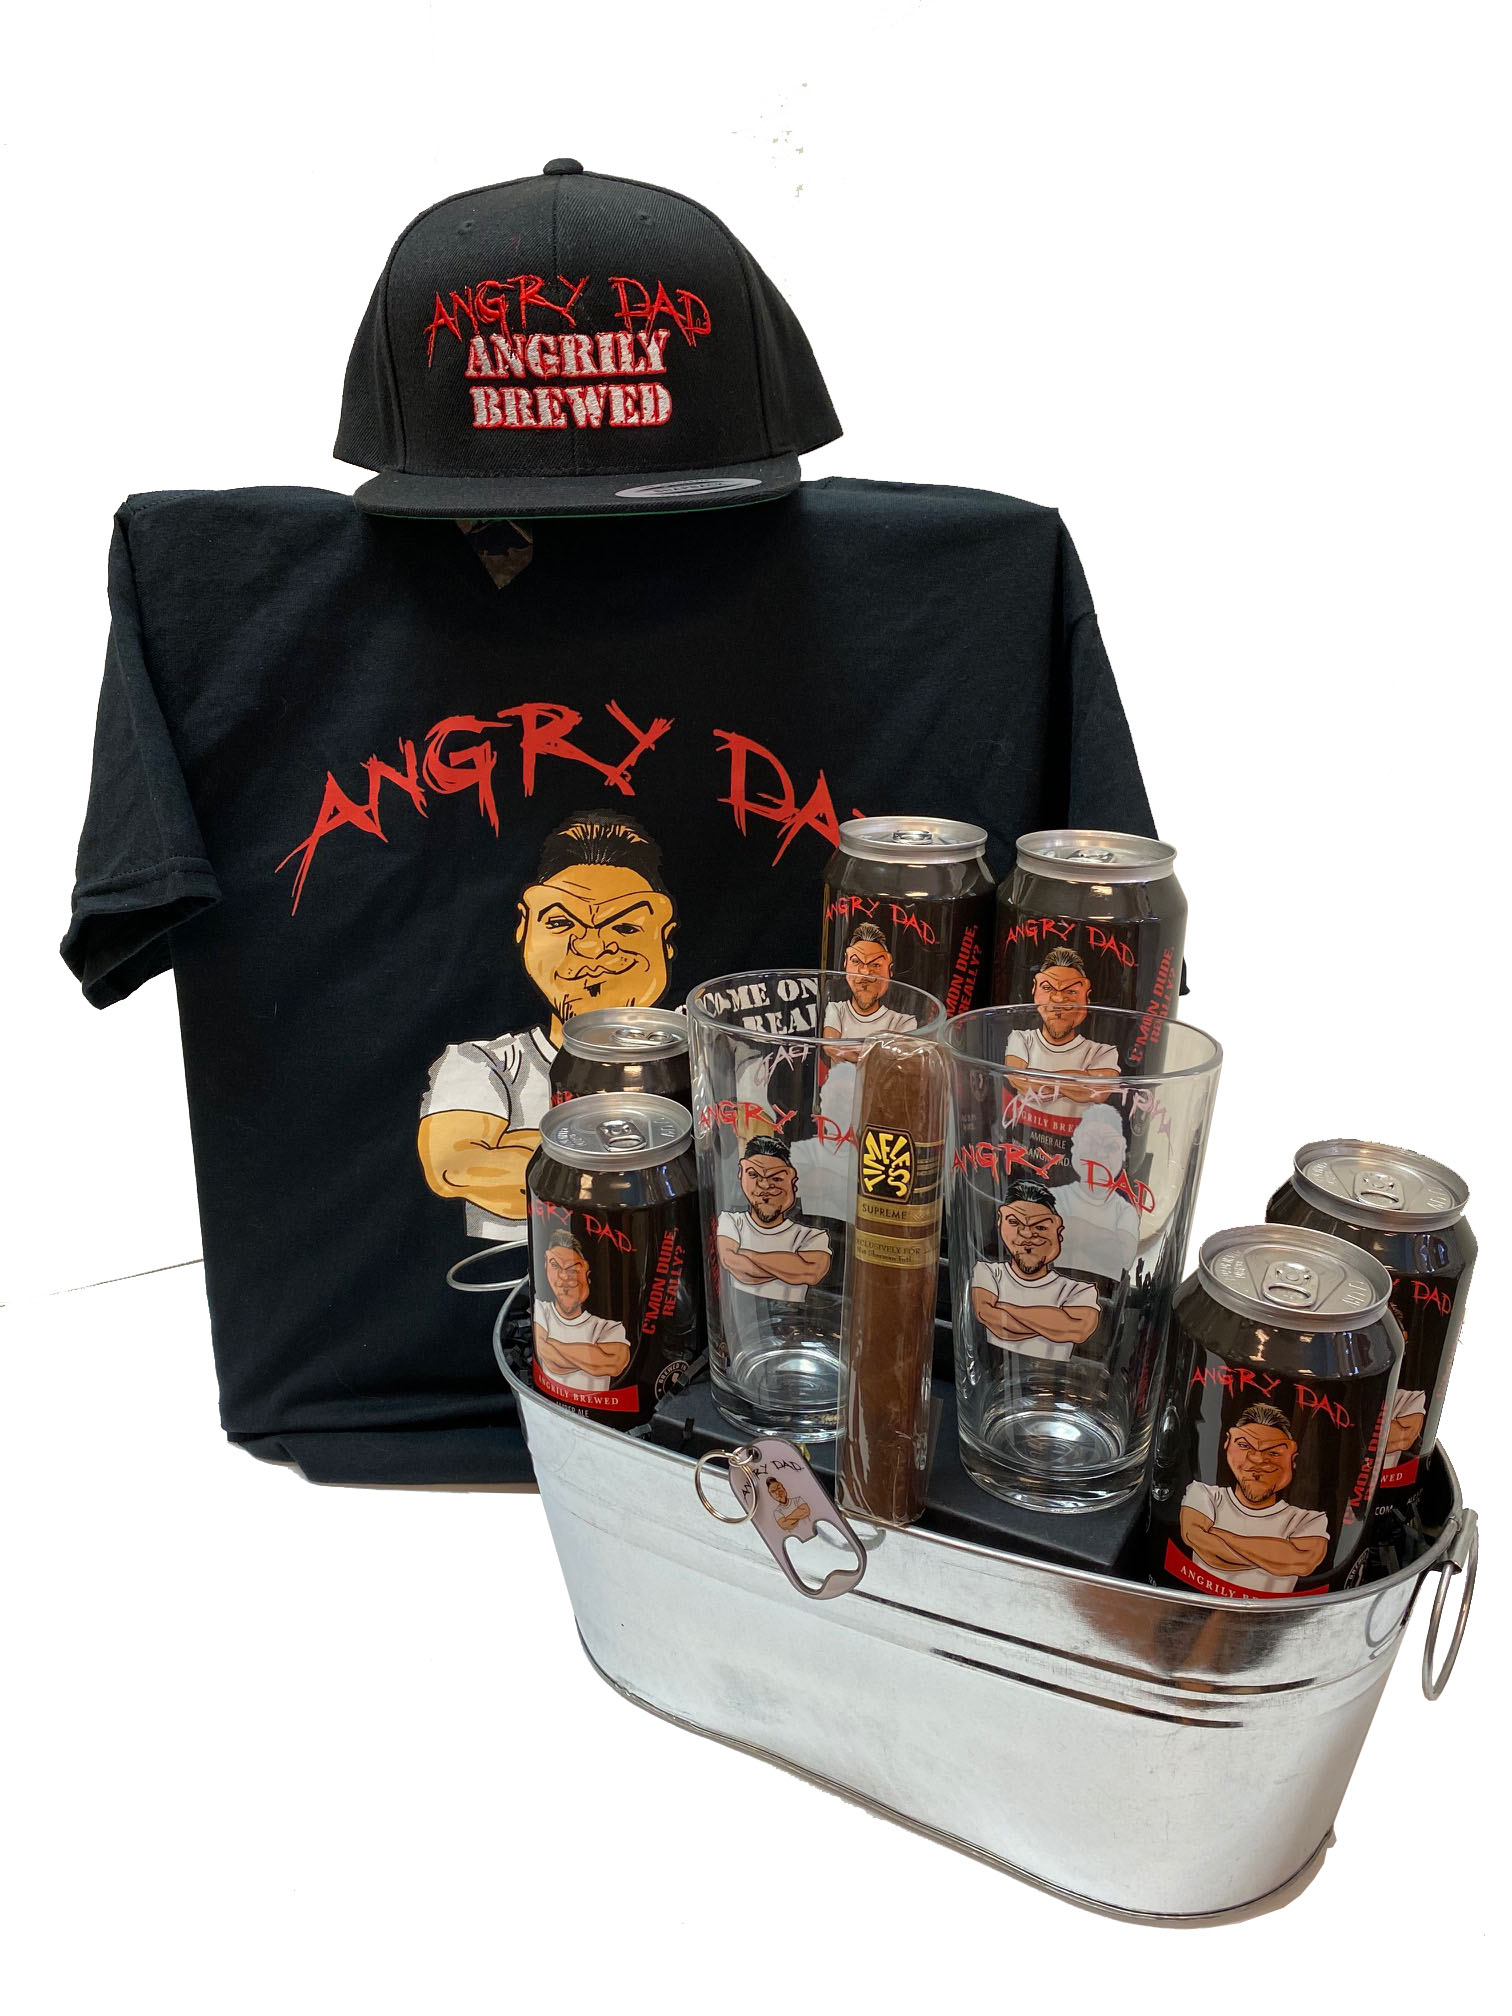 Deluxe Angry Dad Beer Gift Basket by